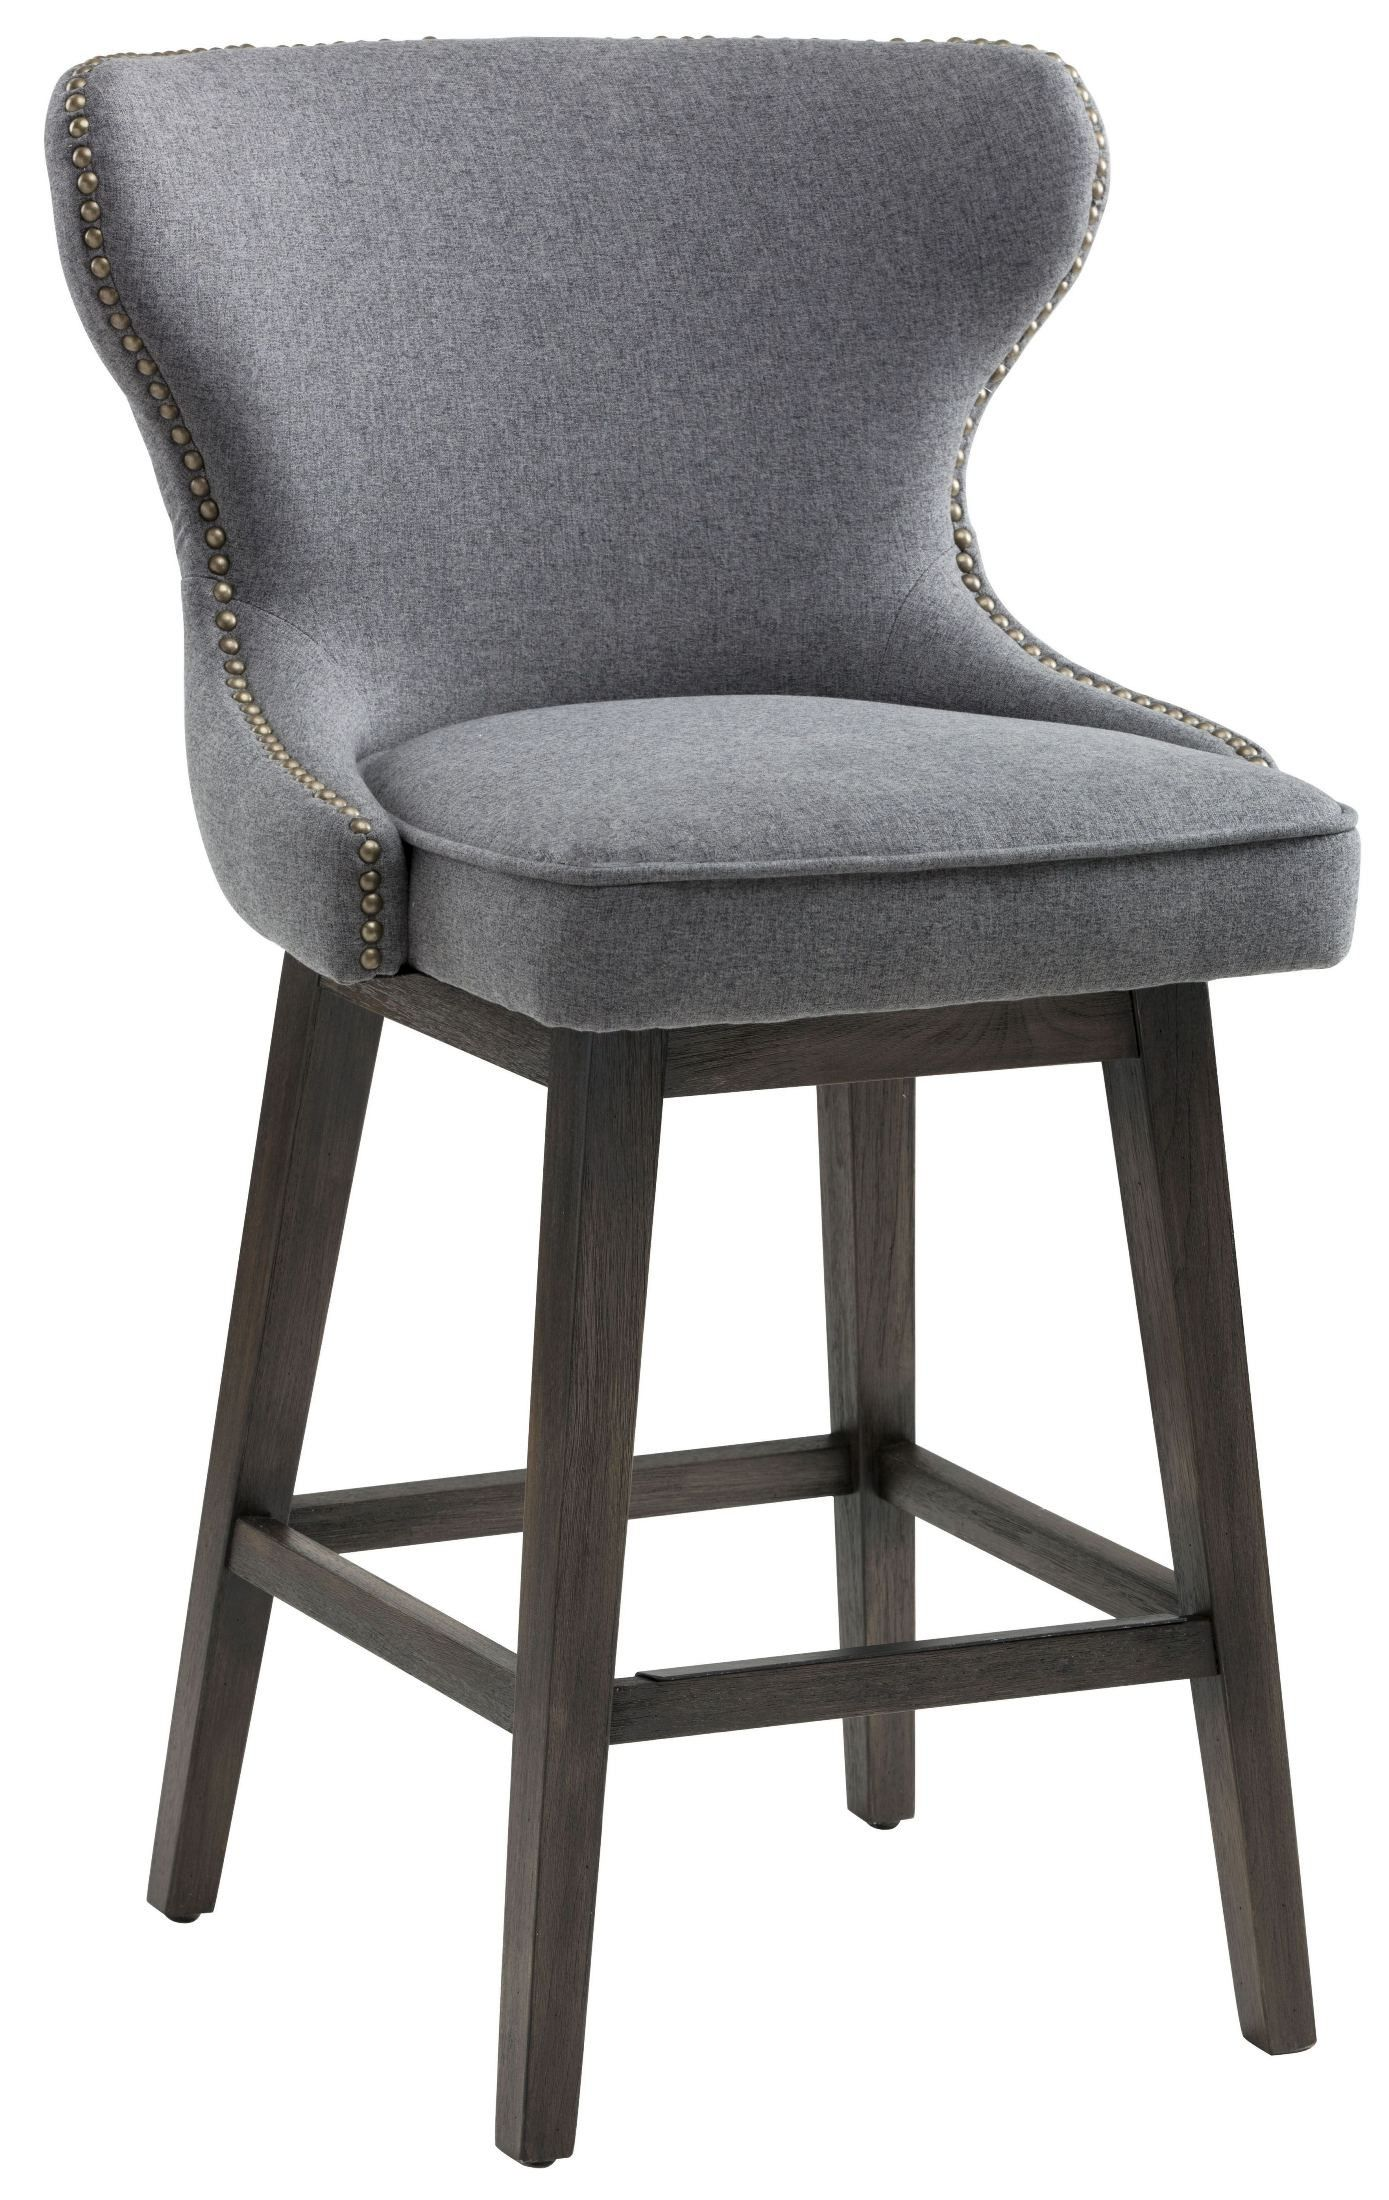 Ariana Dark Grey Fabric Swivel Counter Stool | house | Pinterest ...